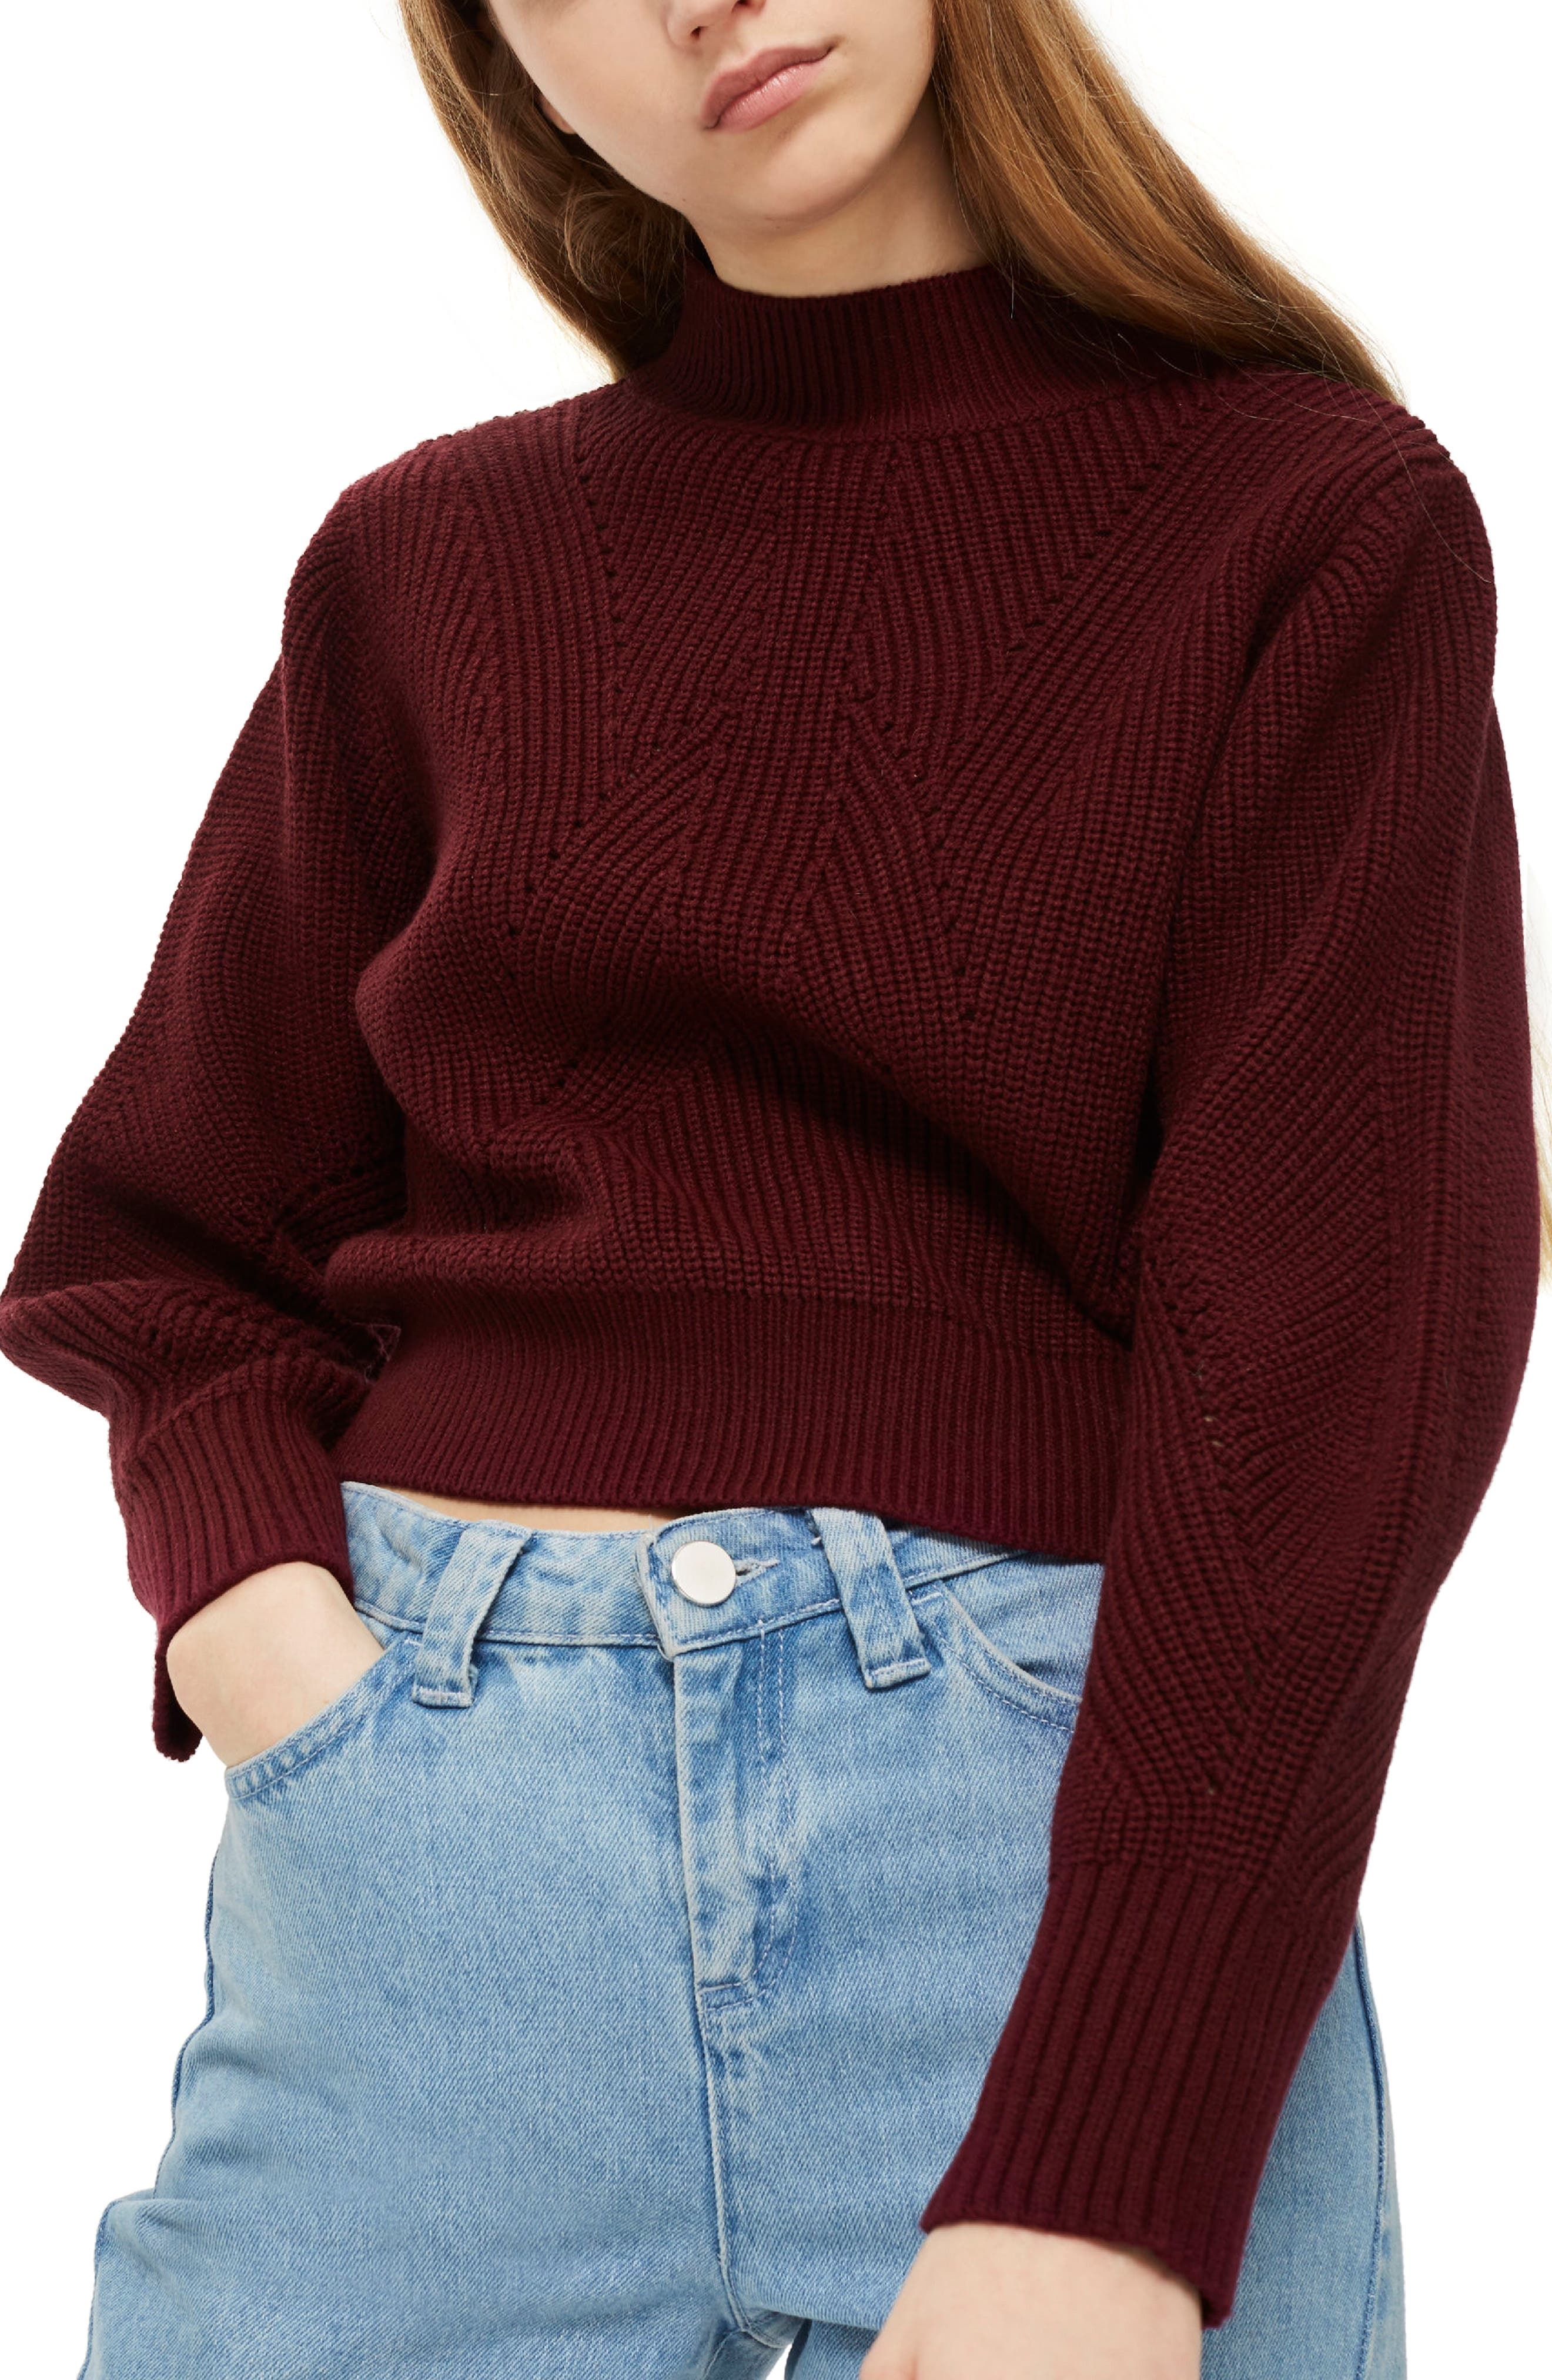 Lace-Up Back Sweater,                             Main thumbnail 1, color,                             640